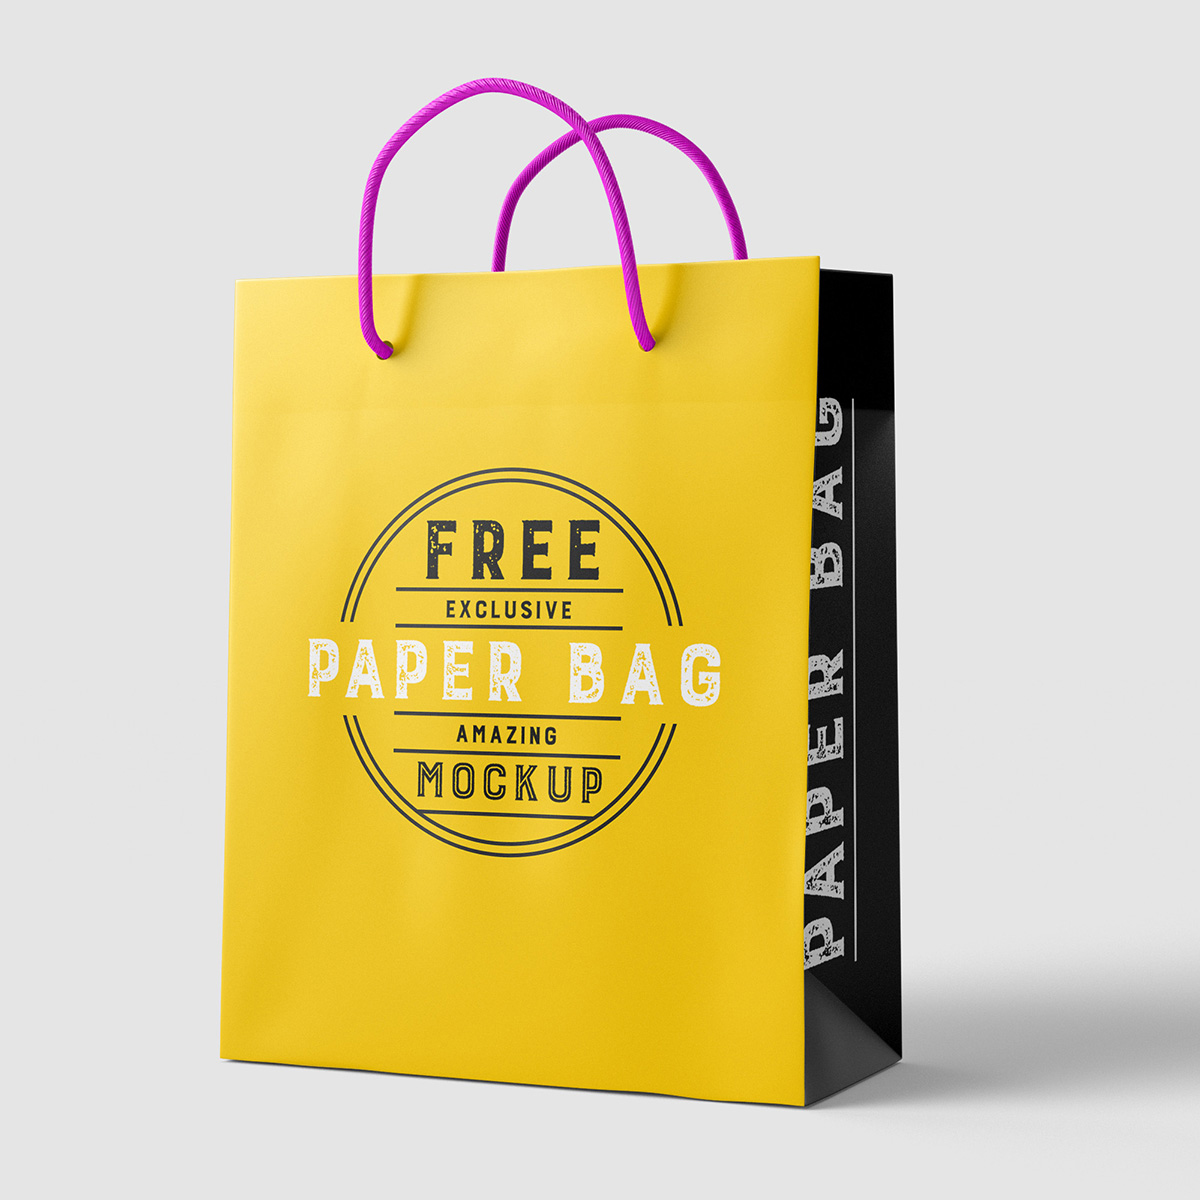 Free-Beautiful-Paper-Shopping-Bag-MockUp-Psd-Template-2